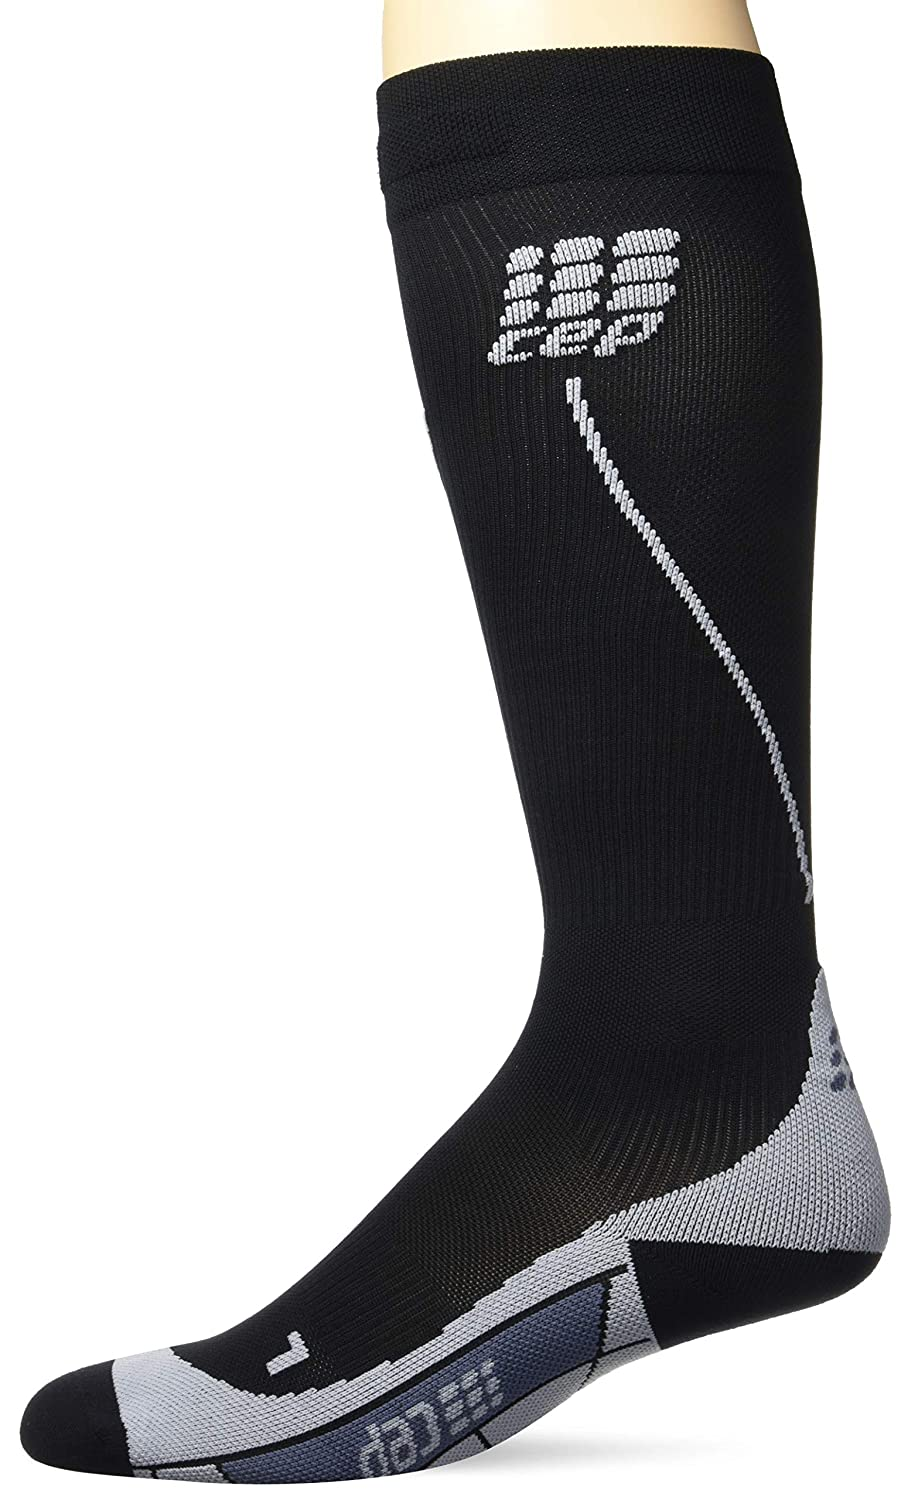 Men's Clothing Cep Progressive Run Socks 2.0 Herren Kompressionssocken Socken Strümpfe Wp553